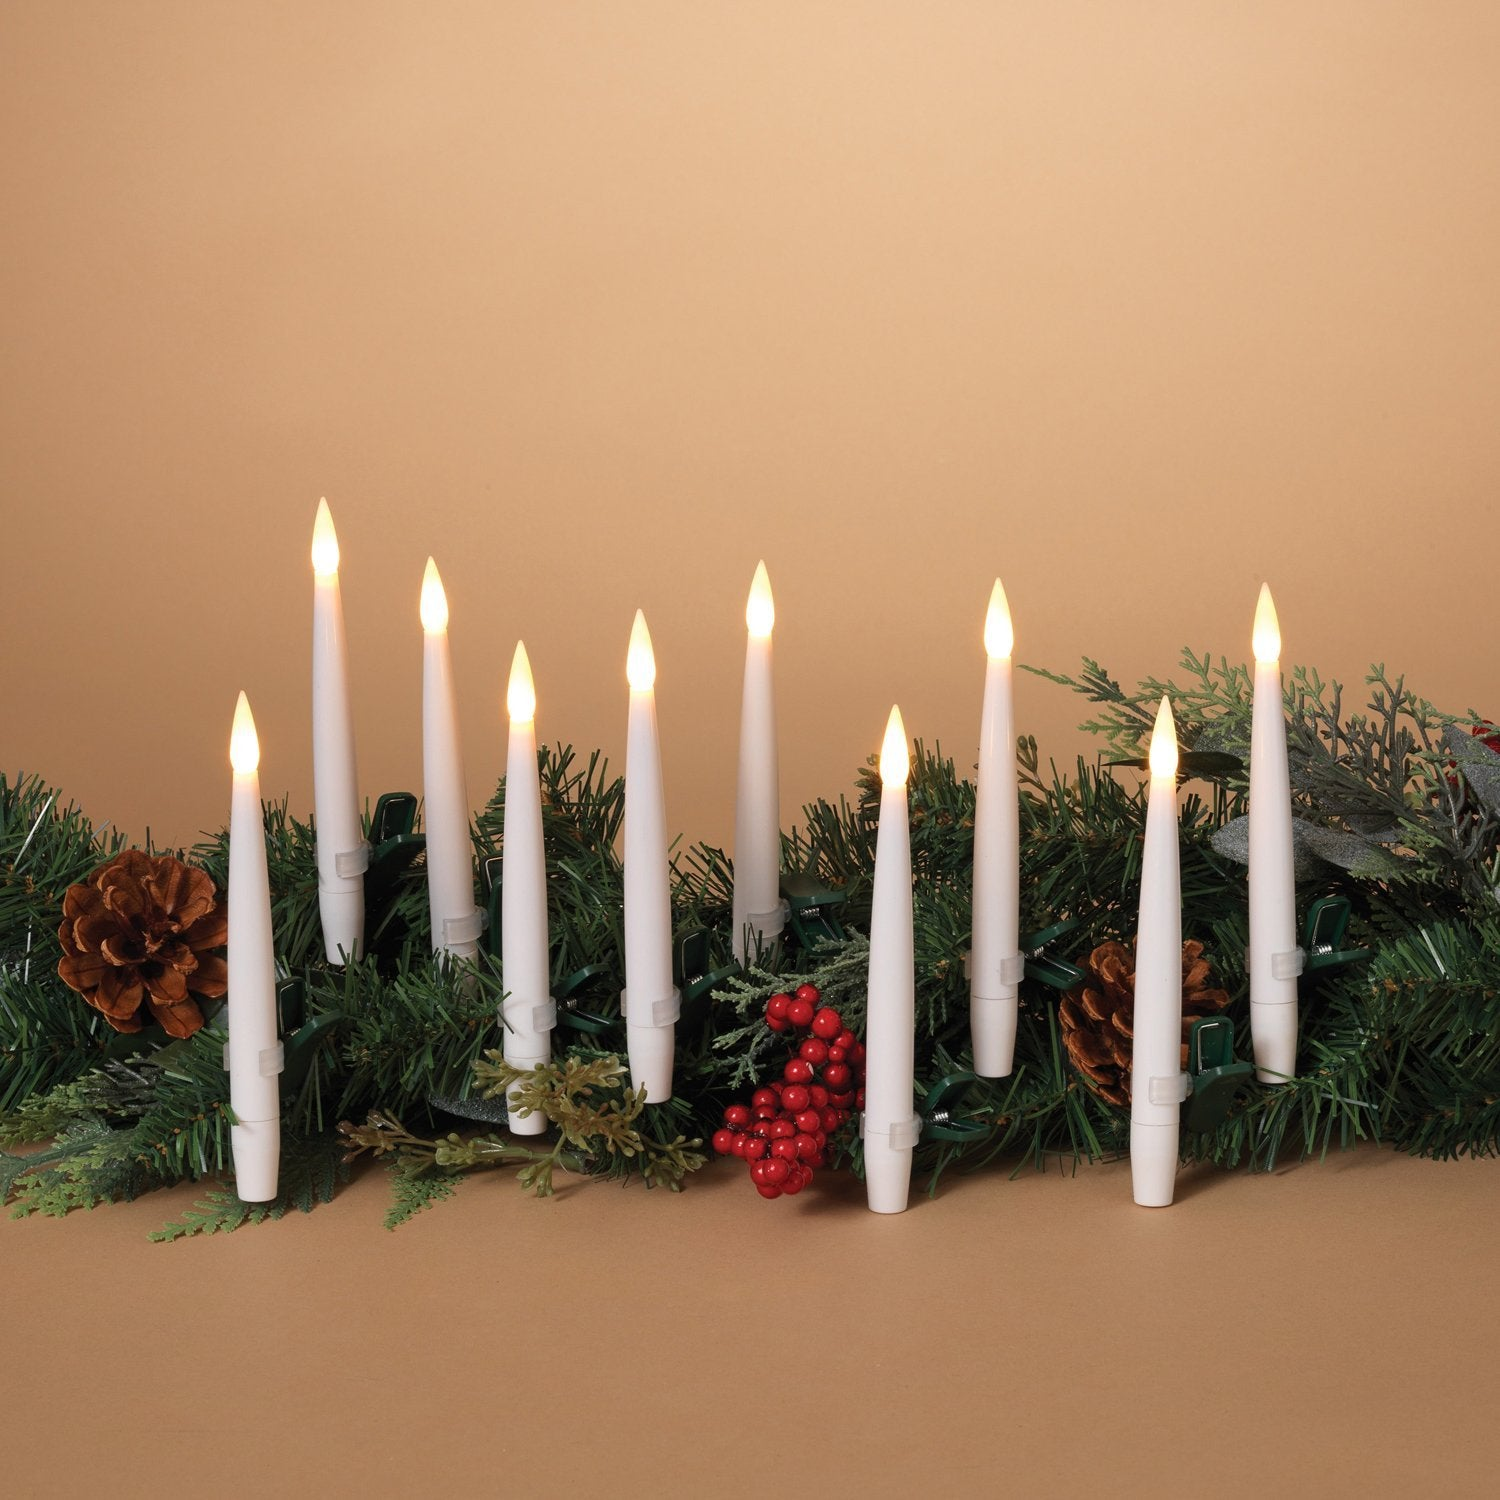 Christmas Candles.Set Of 10 Christmas Candles With Clips 6 Inches High Battery Operated Led Candles With Remote